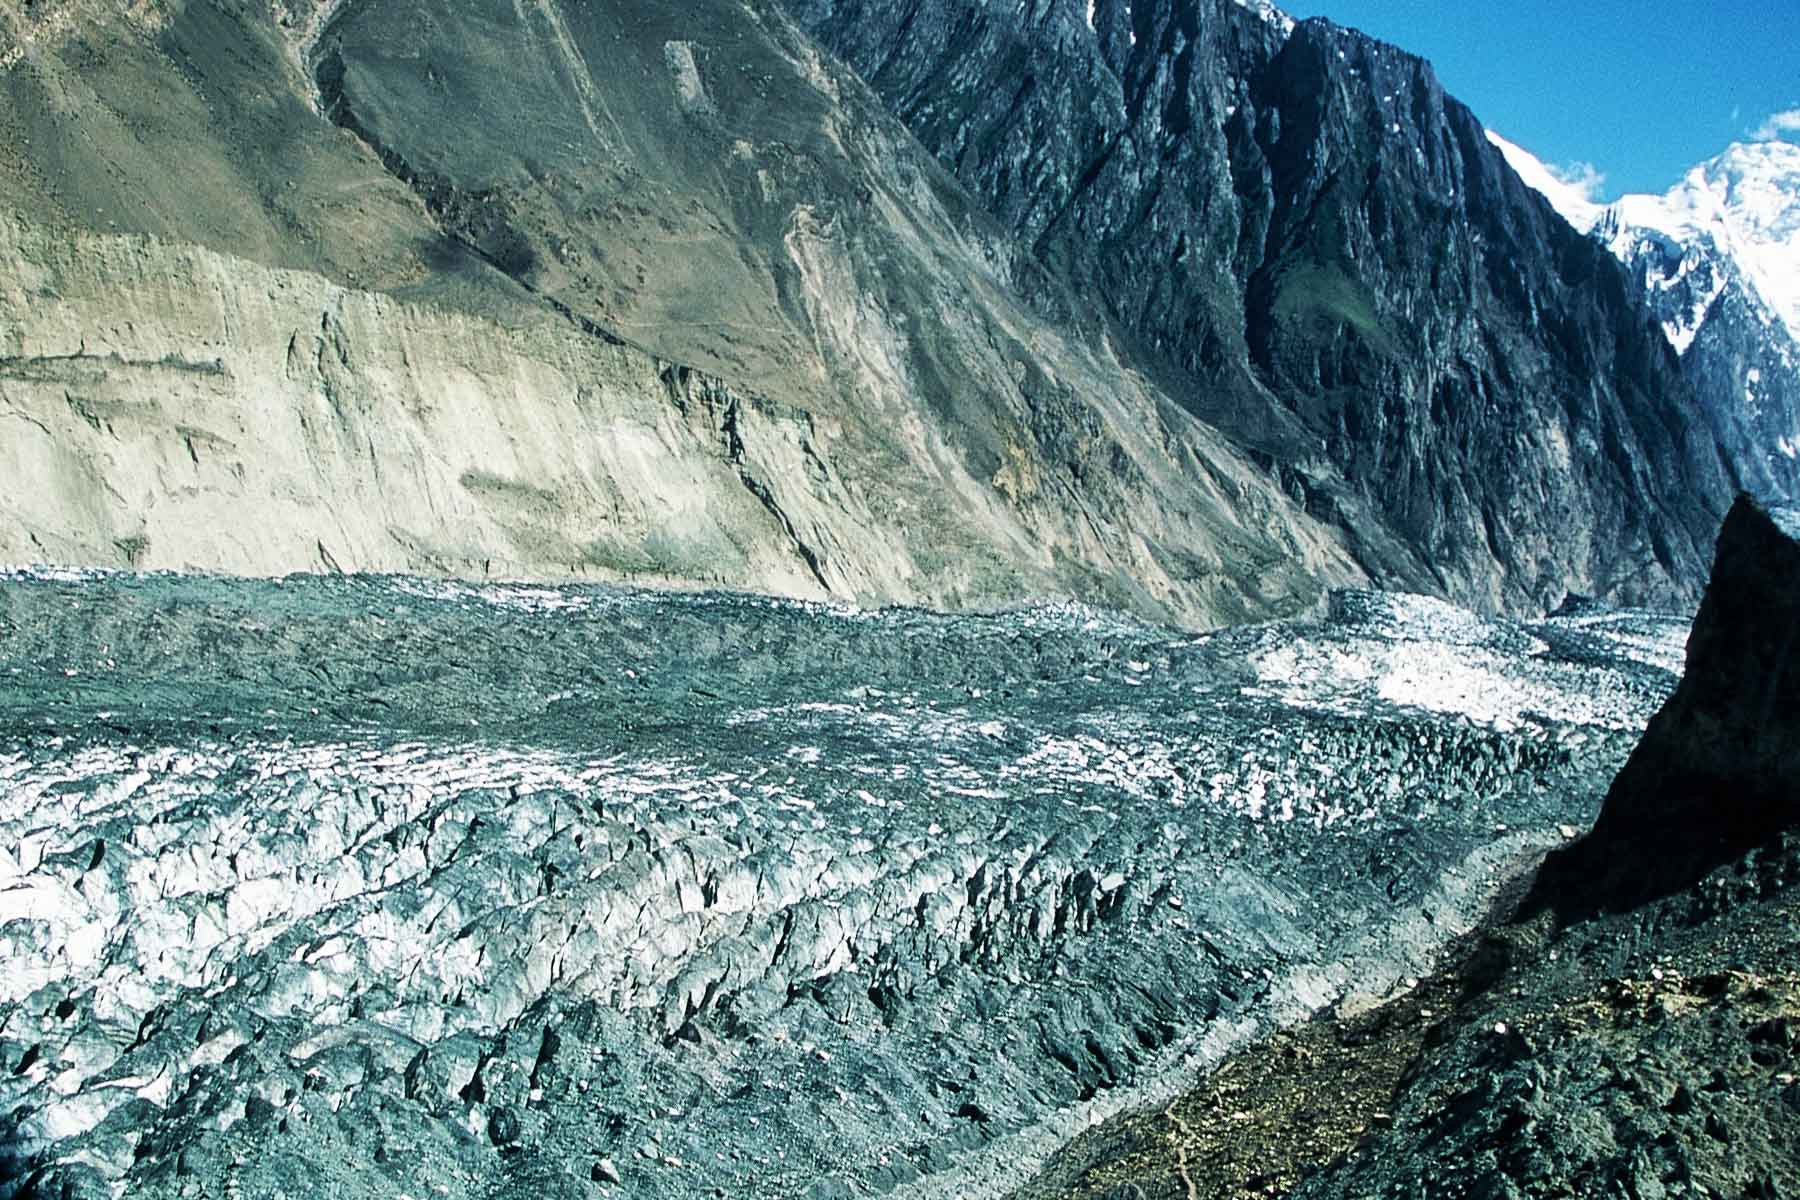 Hopper Glacier - Global Warming - Naga Valley - Gilgit-Baltistan Pakistan - Photo Steven A Martin